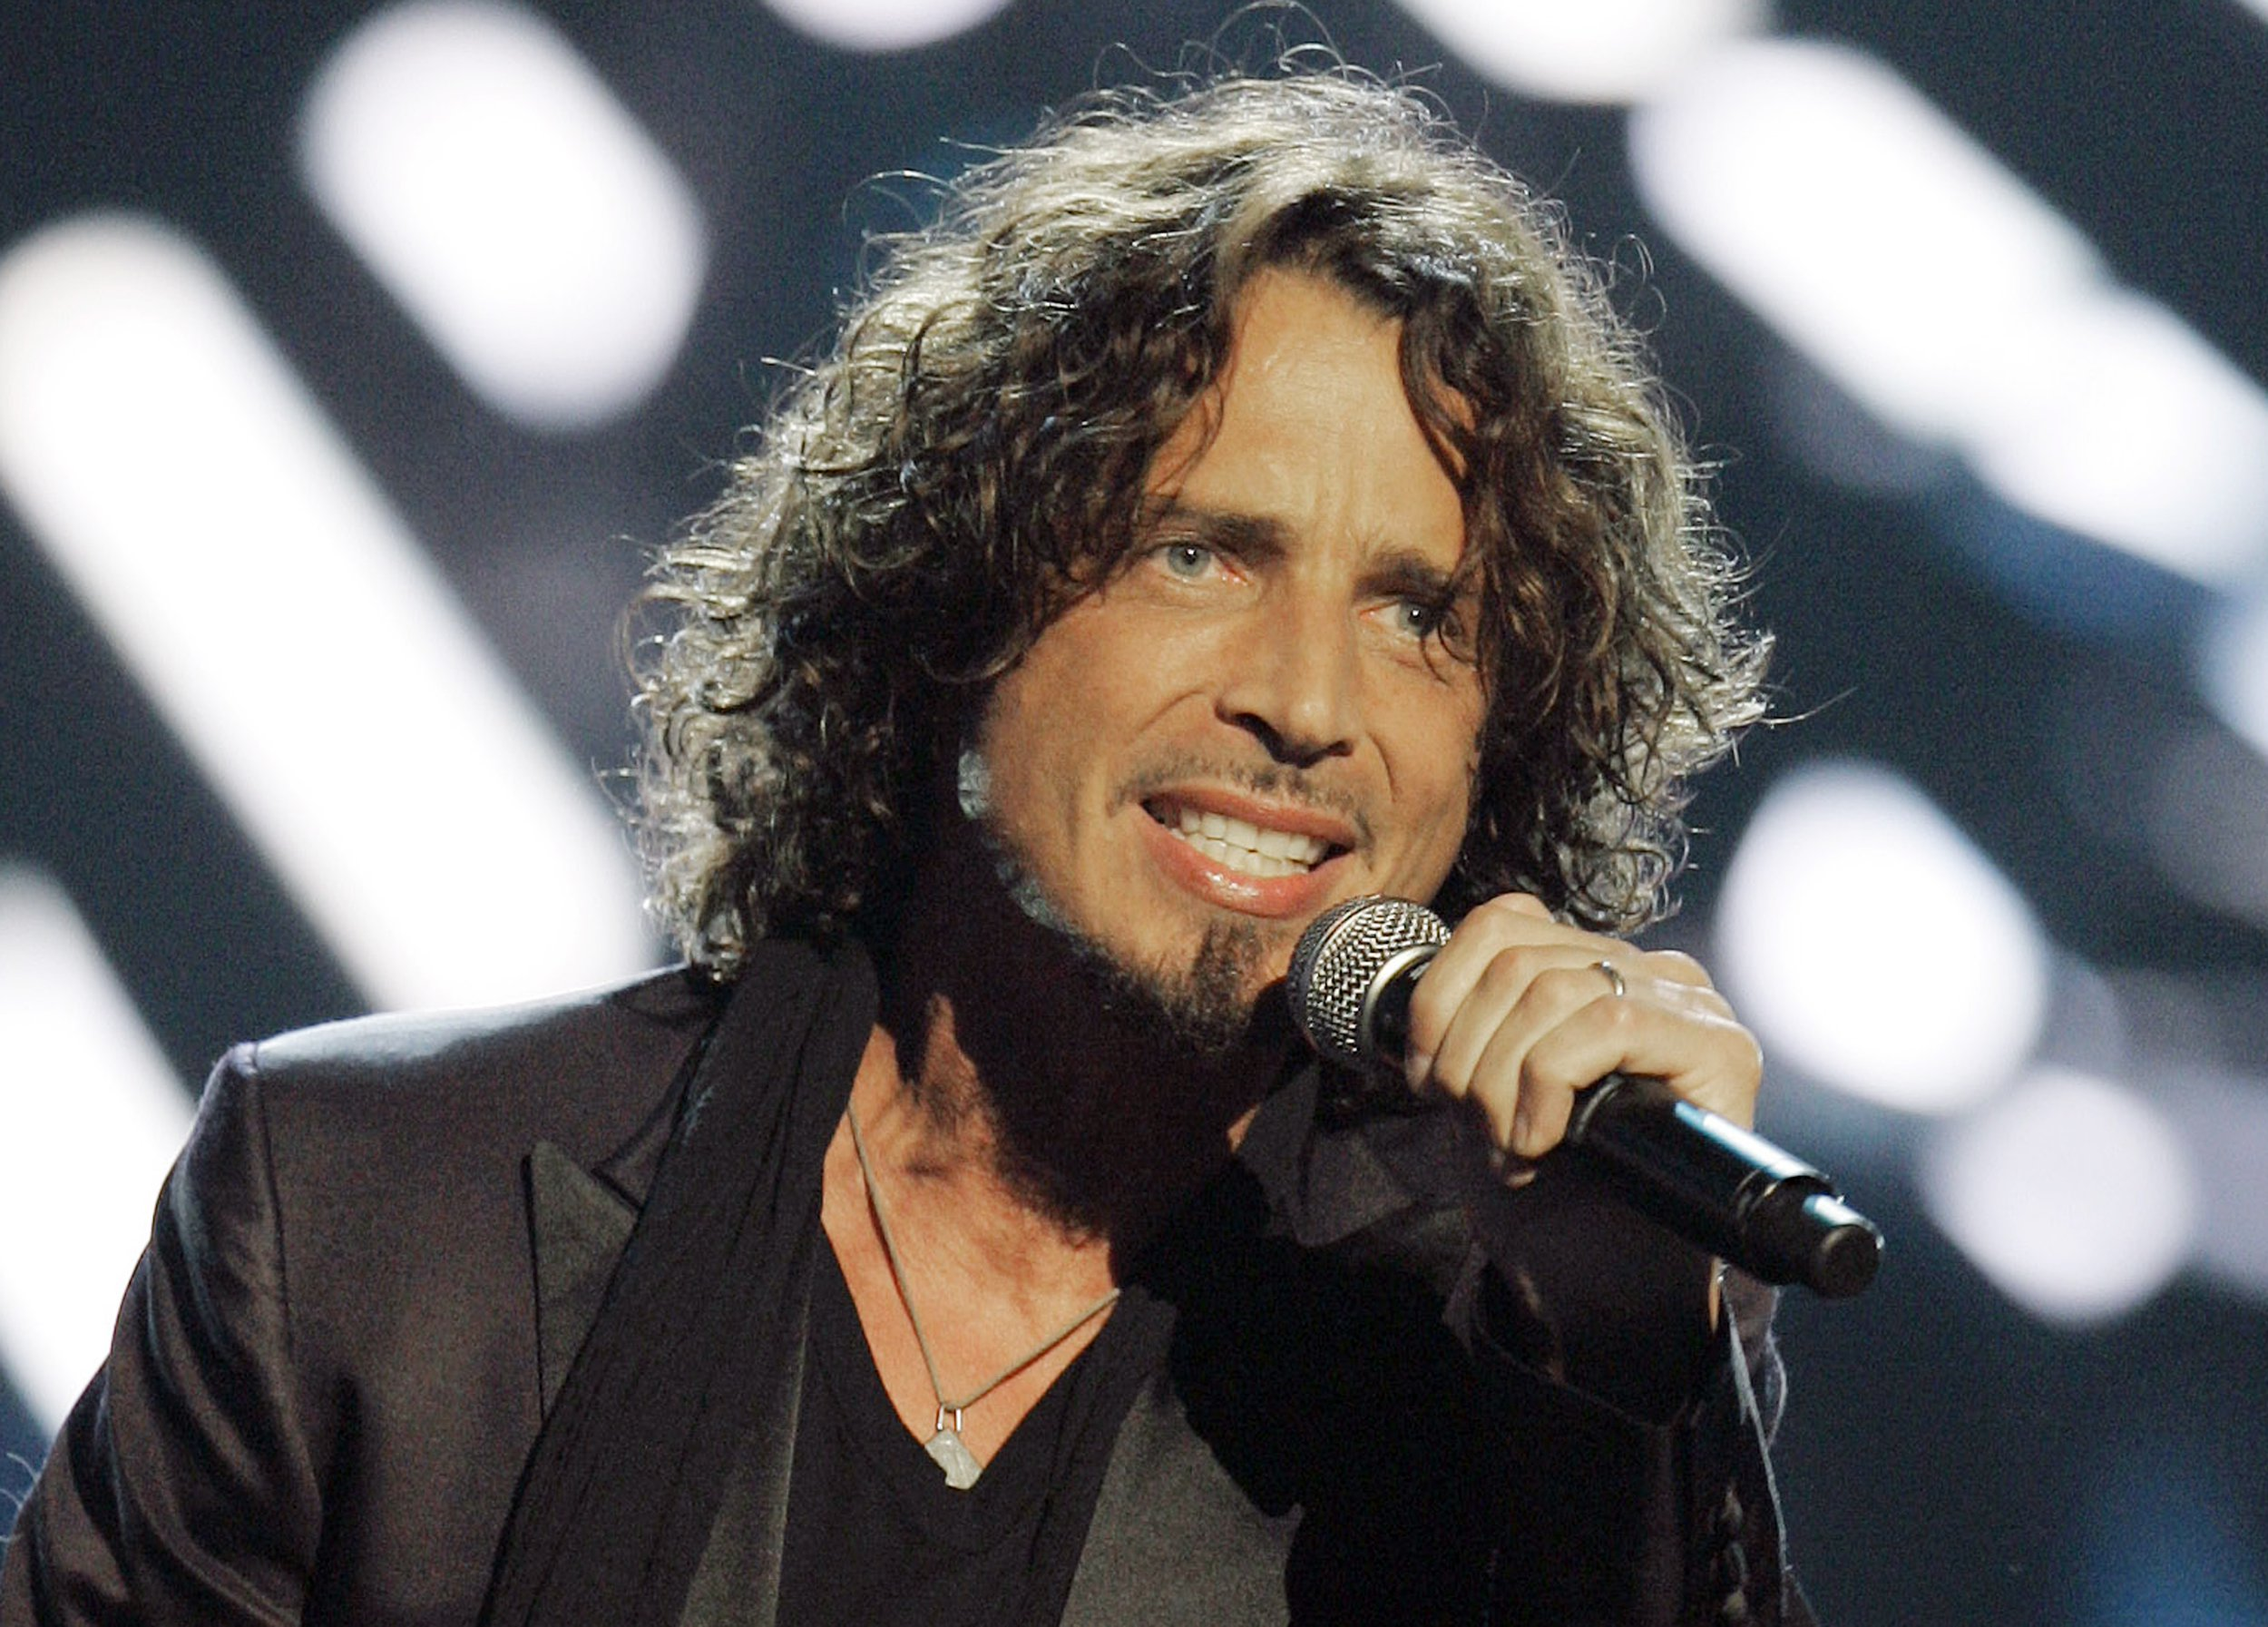 Soundgarden front man Chris Cornell cremated in private service